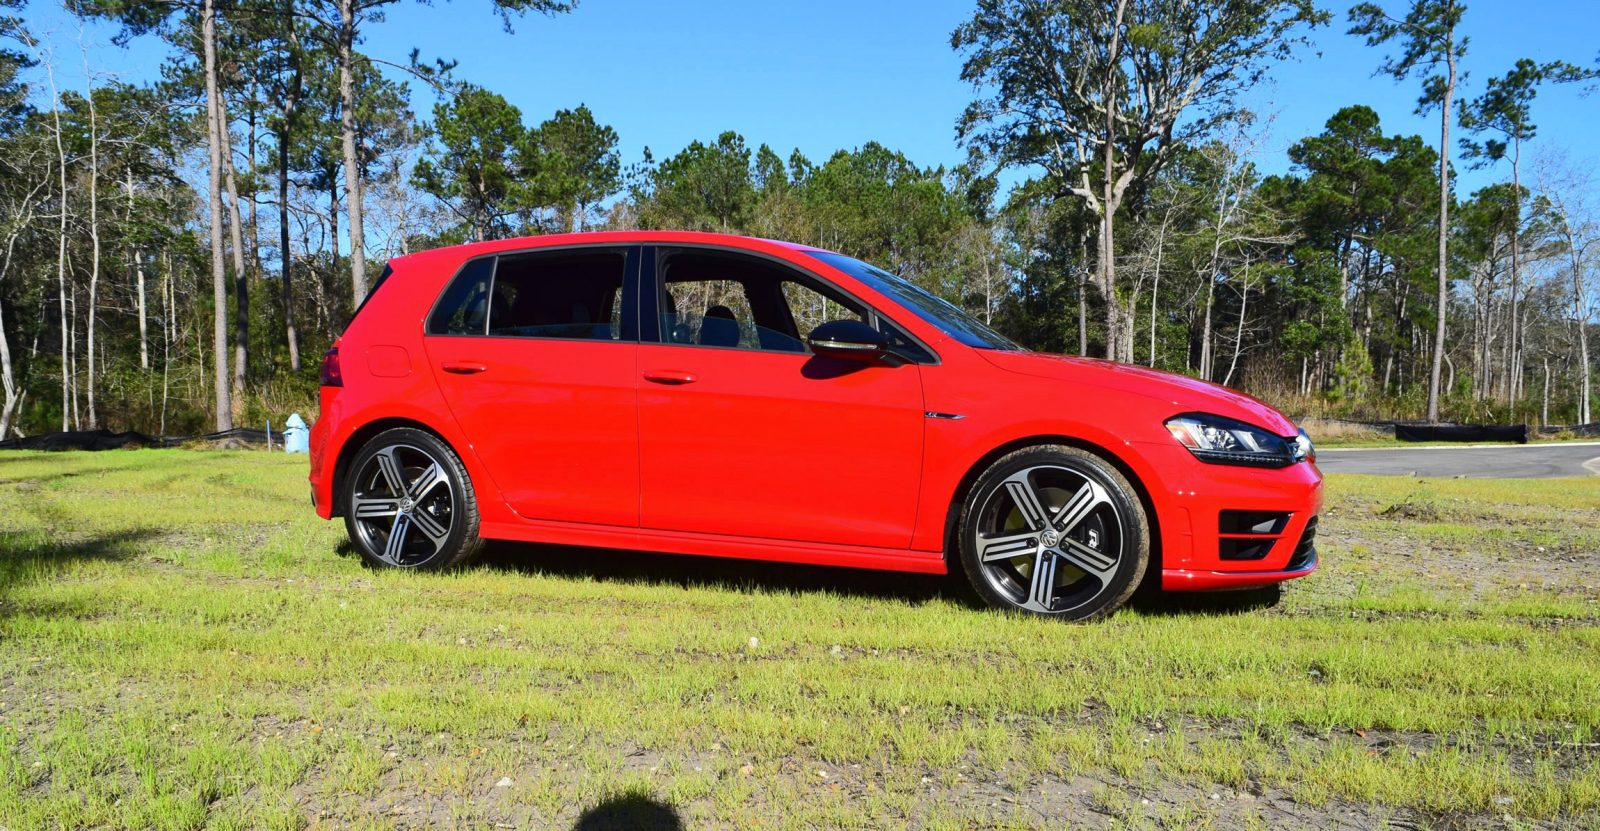 2017 vw golf r review 29. Black Bedroom Furniture Sets. Home Design Ideas